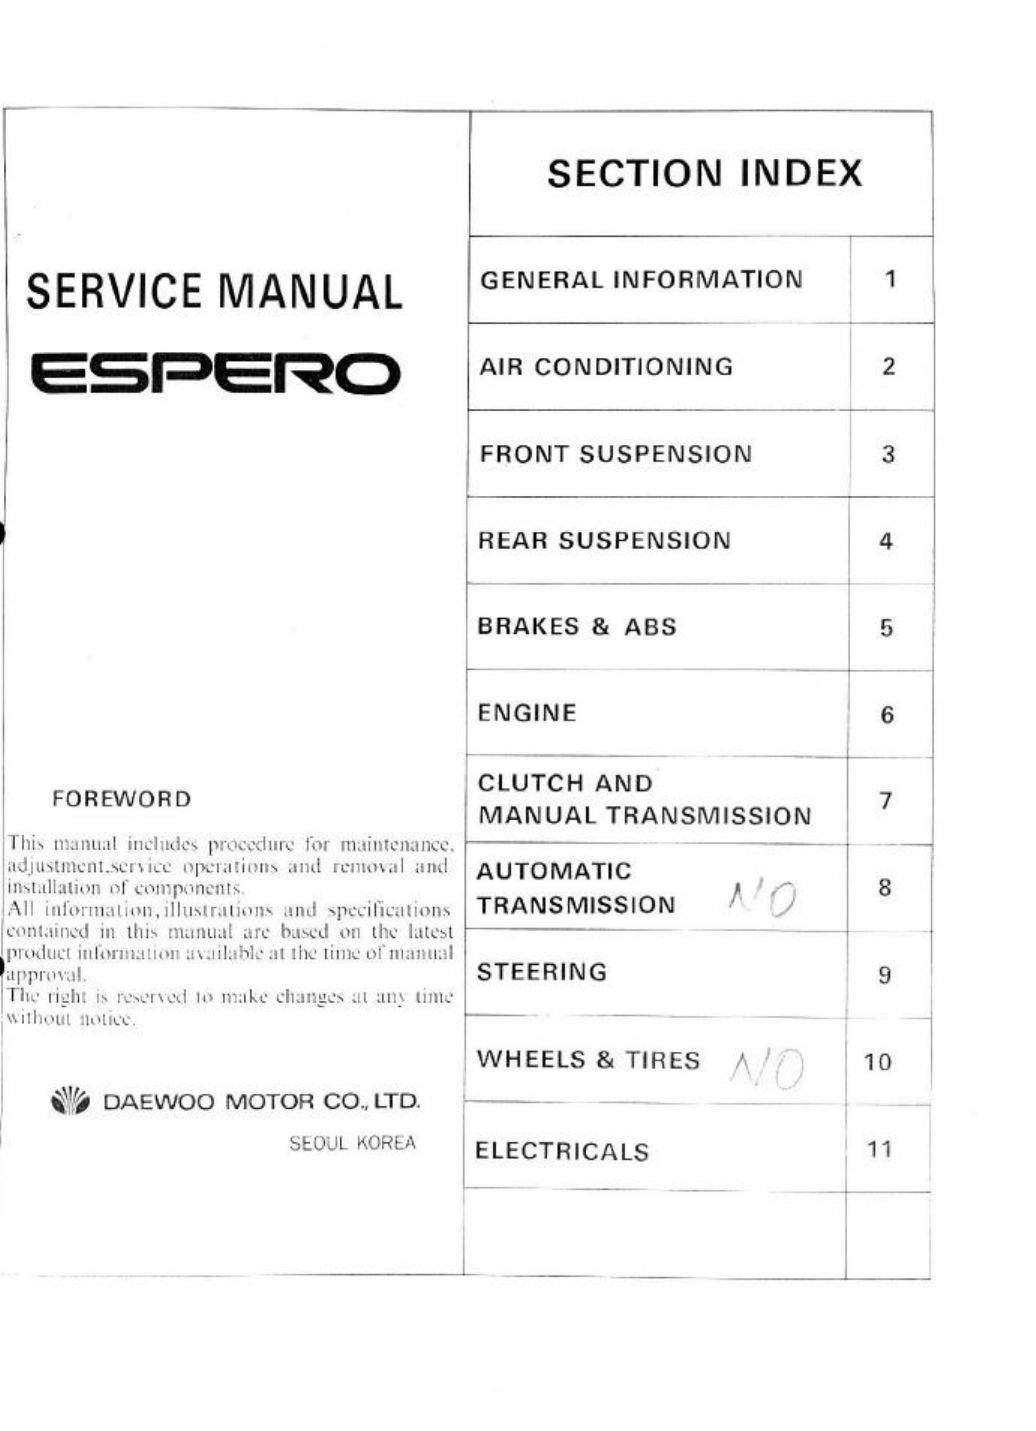 See our other Daewoo Espero Manuals: